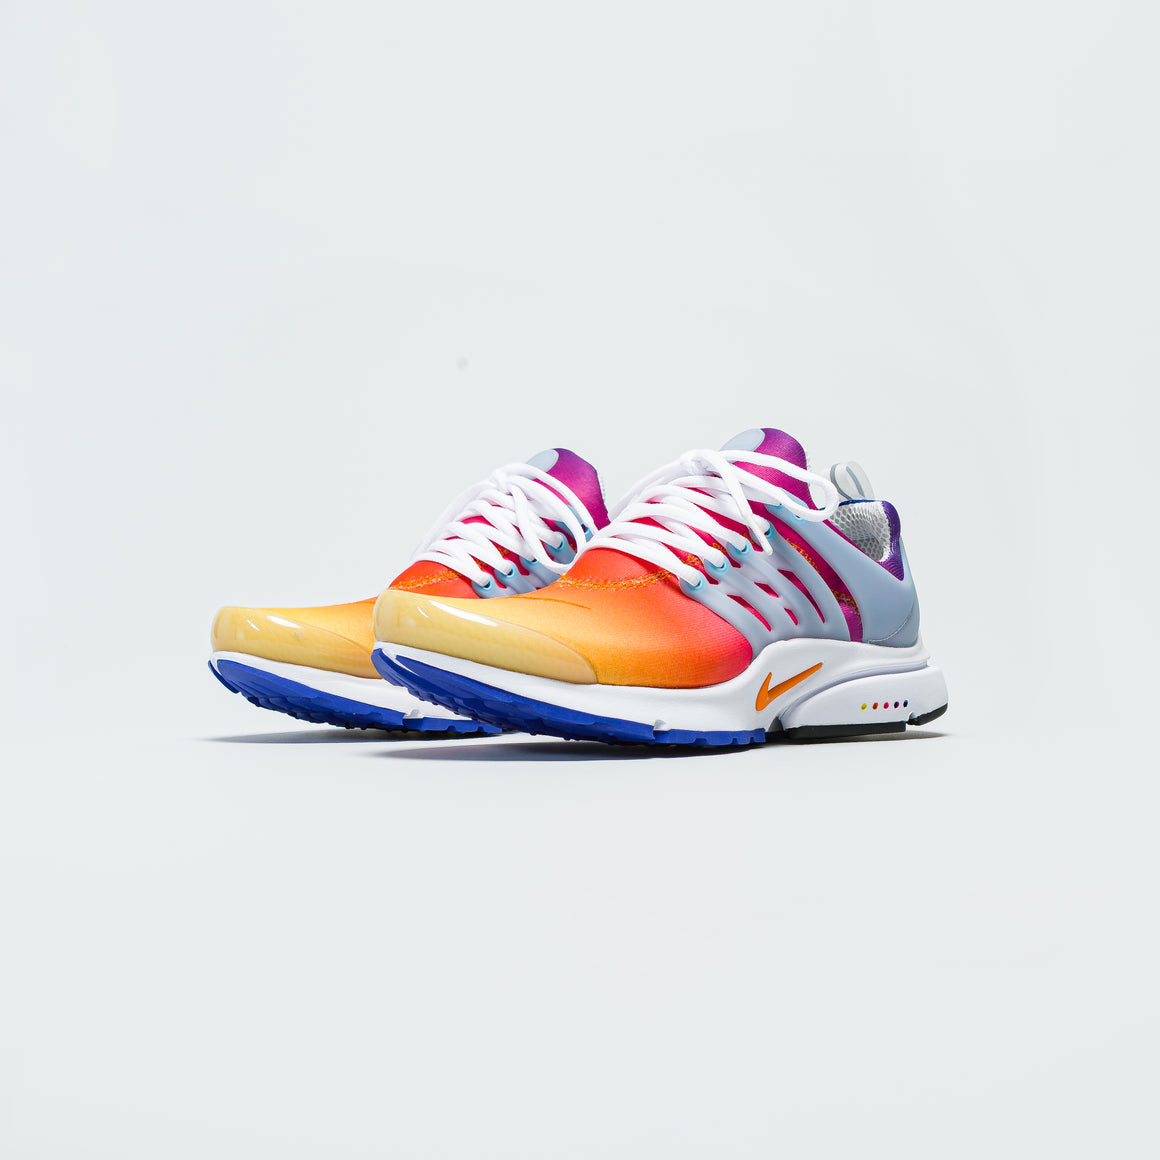 Nike - Air Presto - University Gold/Hyper Crimson-Siren Red - Up There